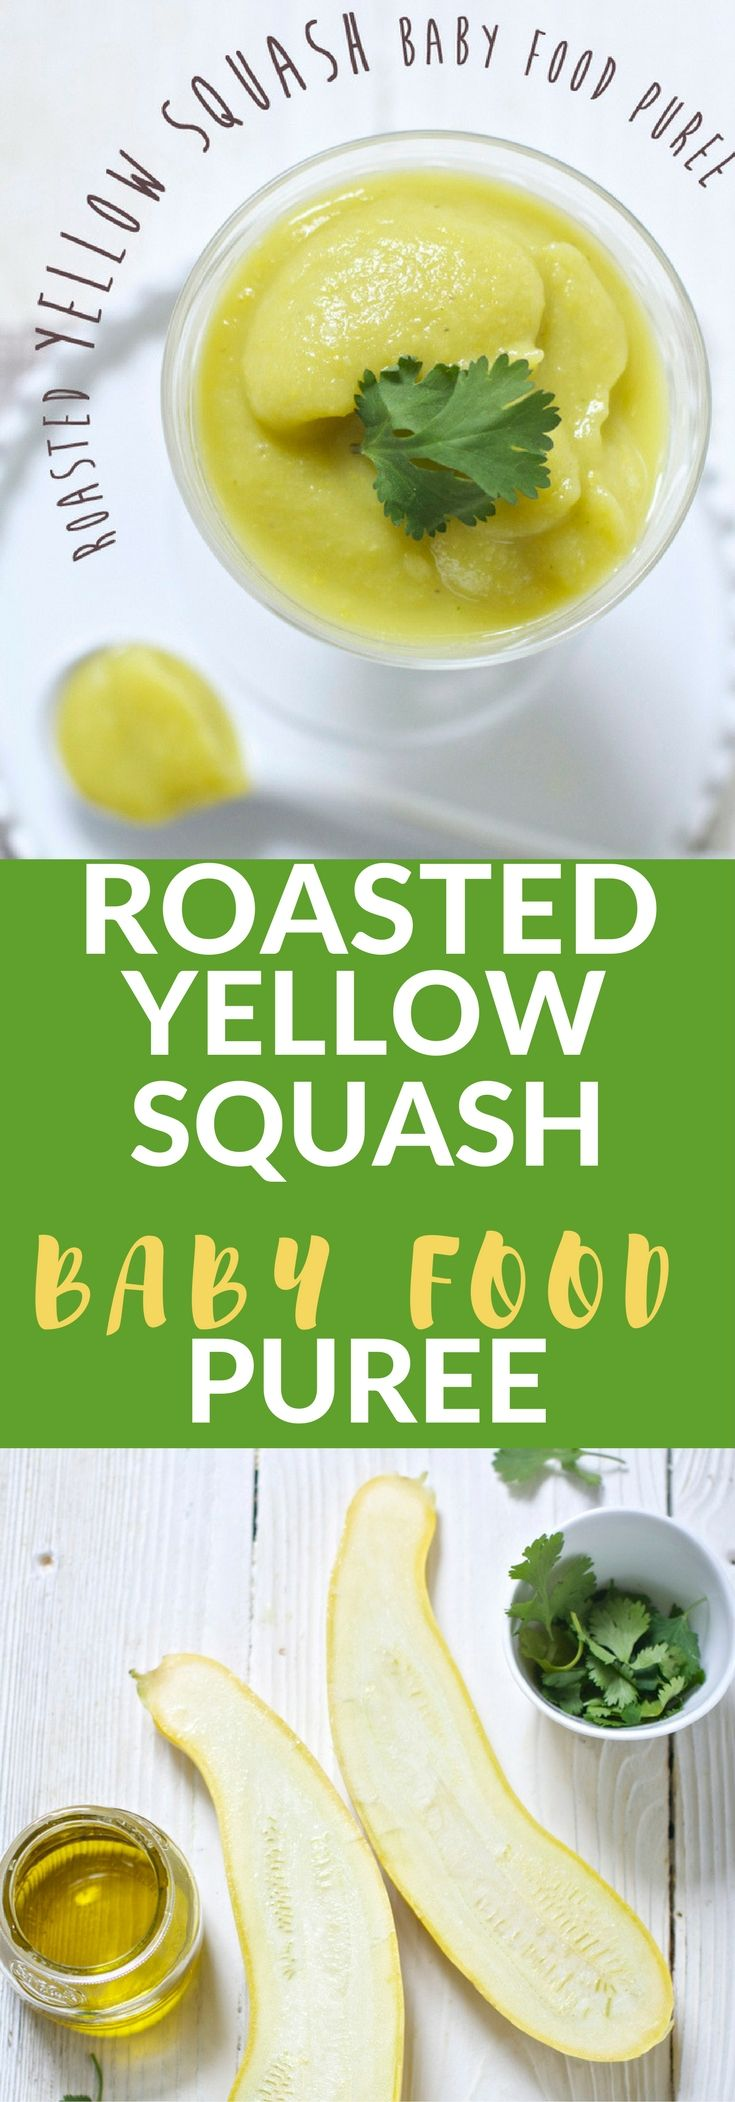 This fun and tasty Roasted Yellow Squash + Olive Oil with Cilantro Baby Food Puree will be a hit with your little one! Creamy, rich and full of flavor, it's hard not to love this amazing puree.